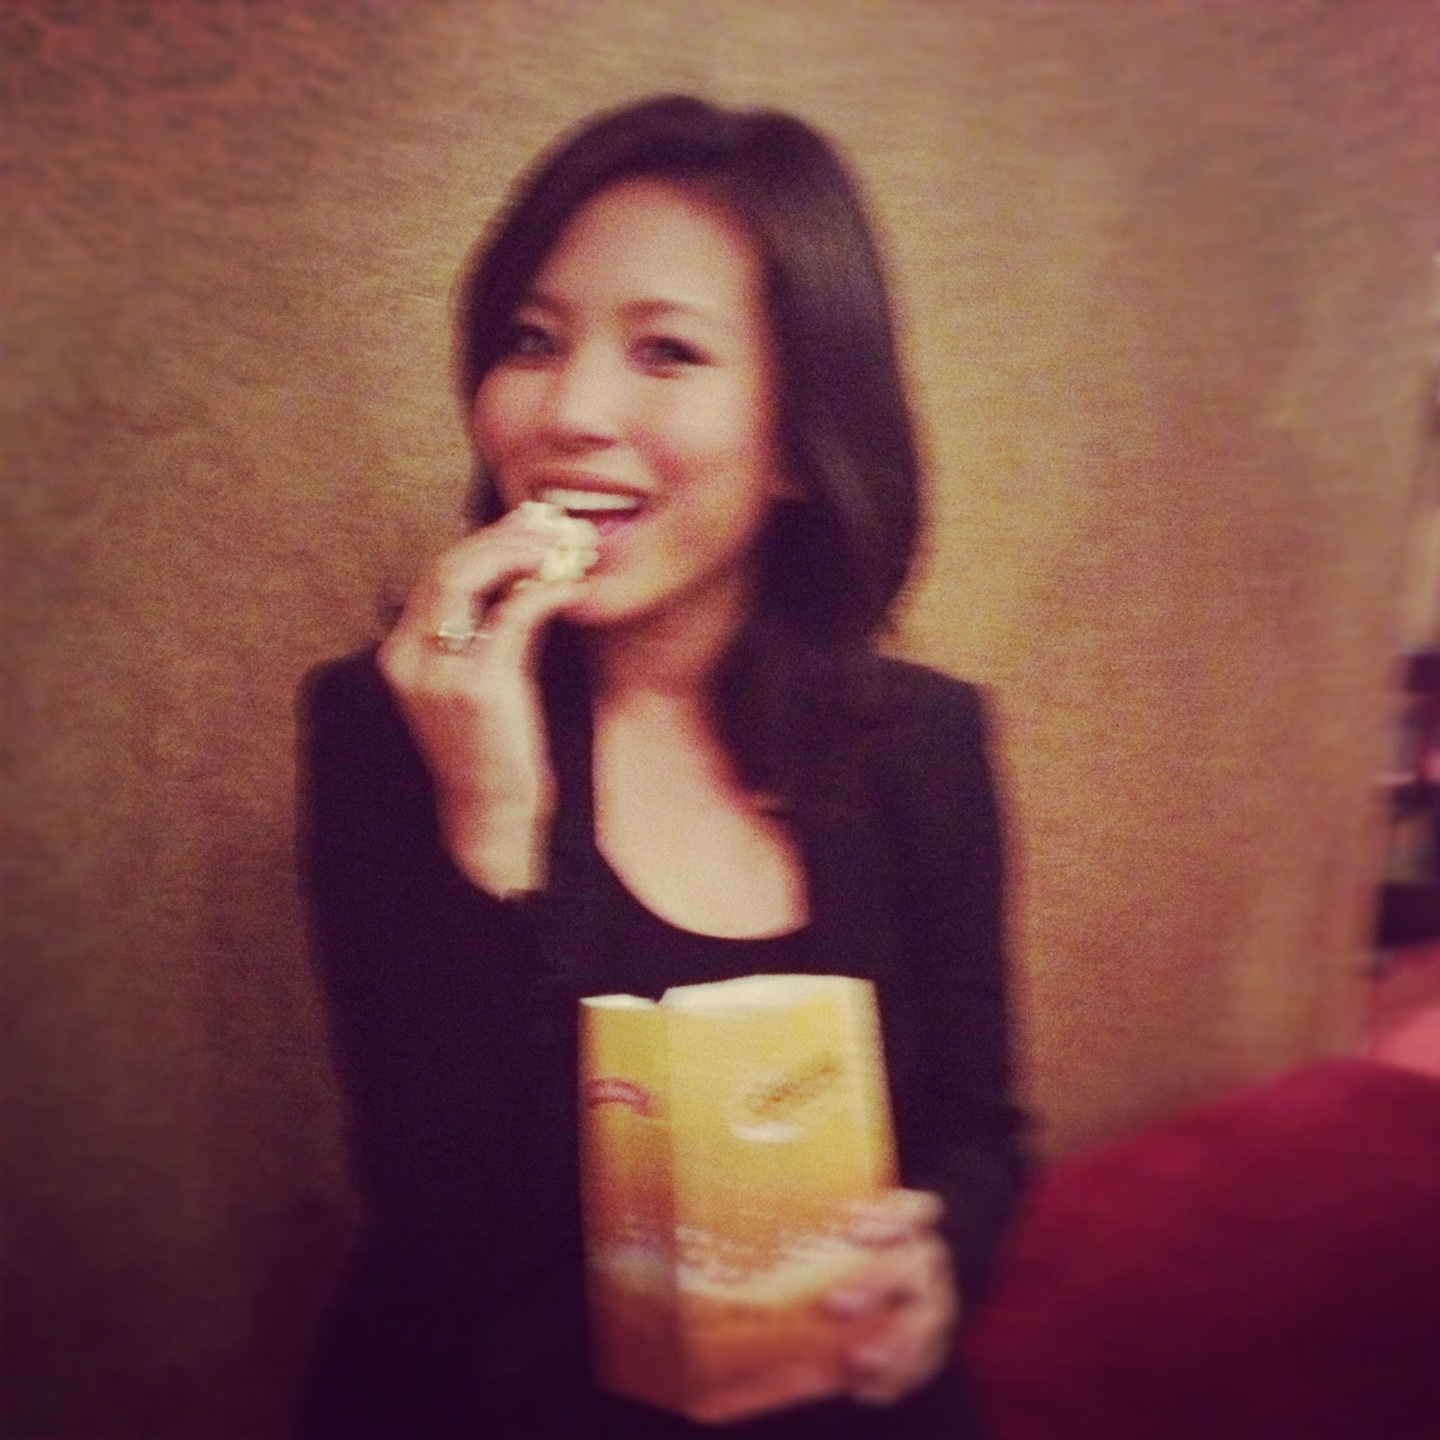 Me, eating complimentary movie popcorn at Ziegfeld Theater #singlegirldinner